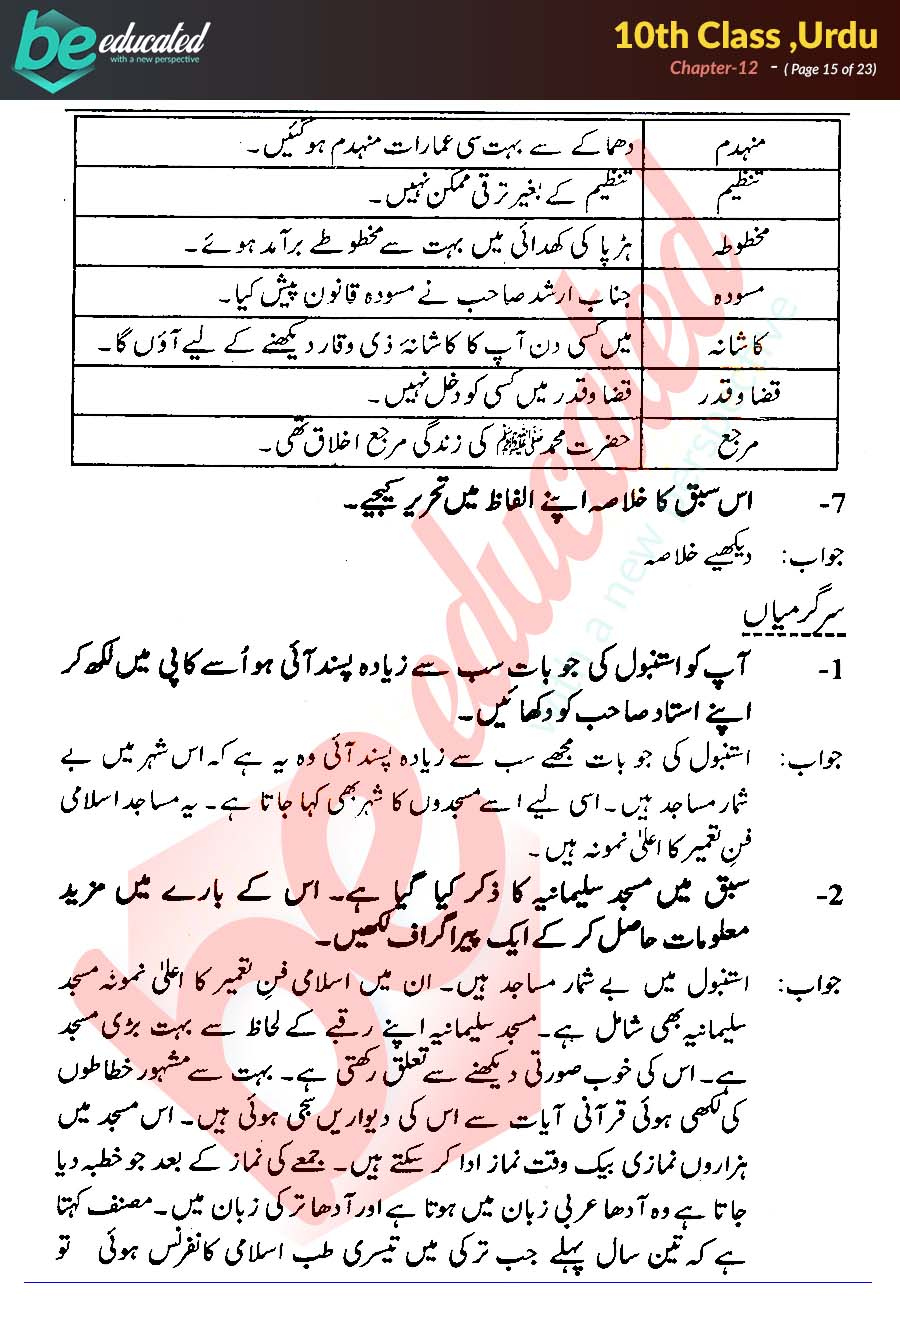 Chapter 12 Urdu 10th Class Notes - Matric Part 2 Notes